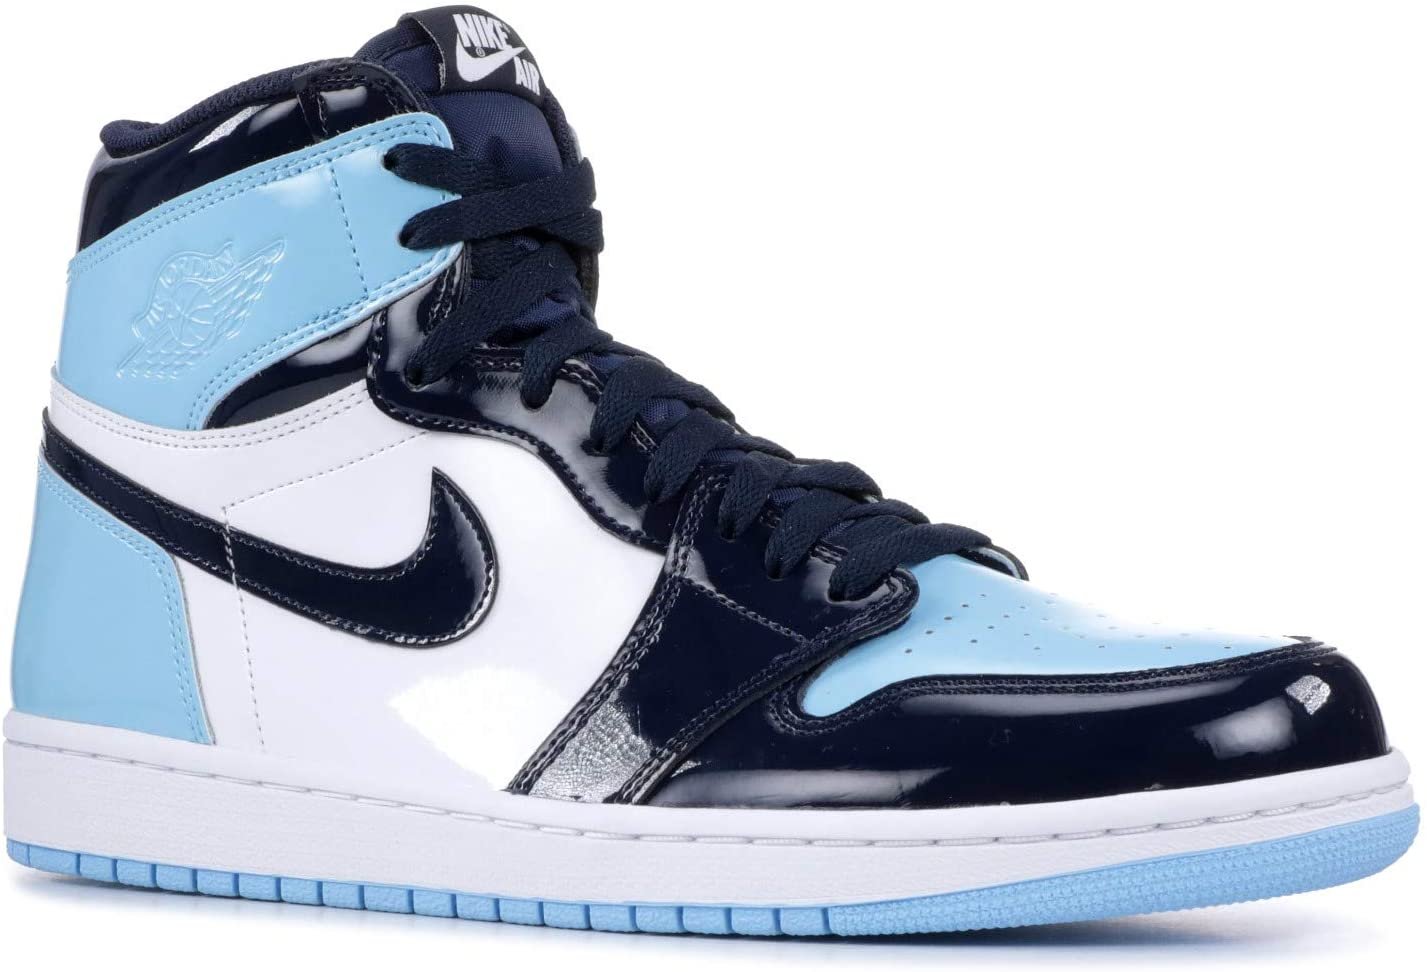 AIR JORDAN 1 Retro High Og 'Blue Chill' Womens -Cd0461-401 - Size W8.5